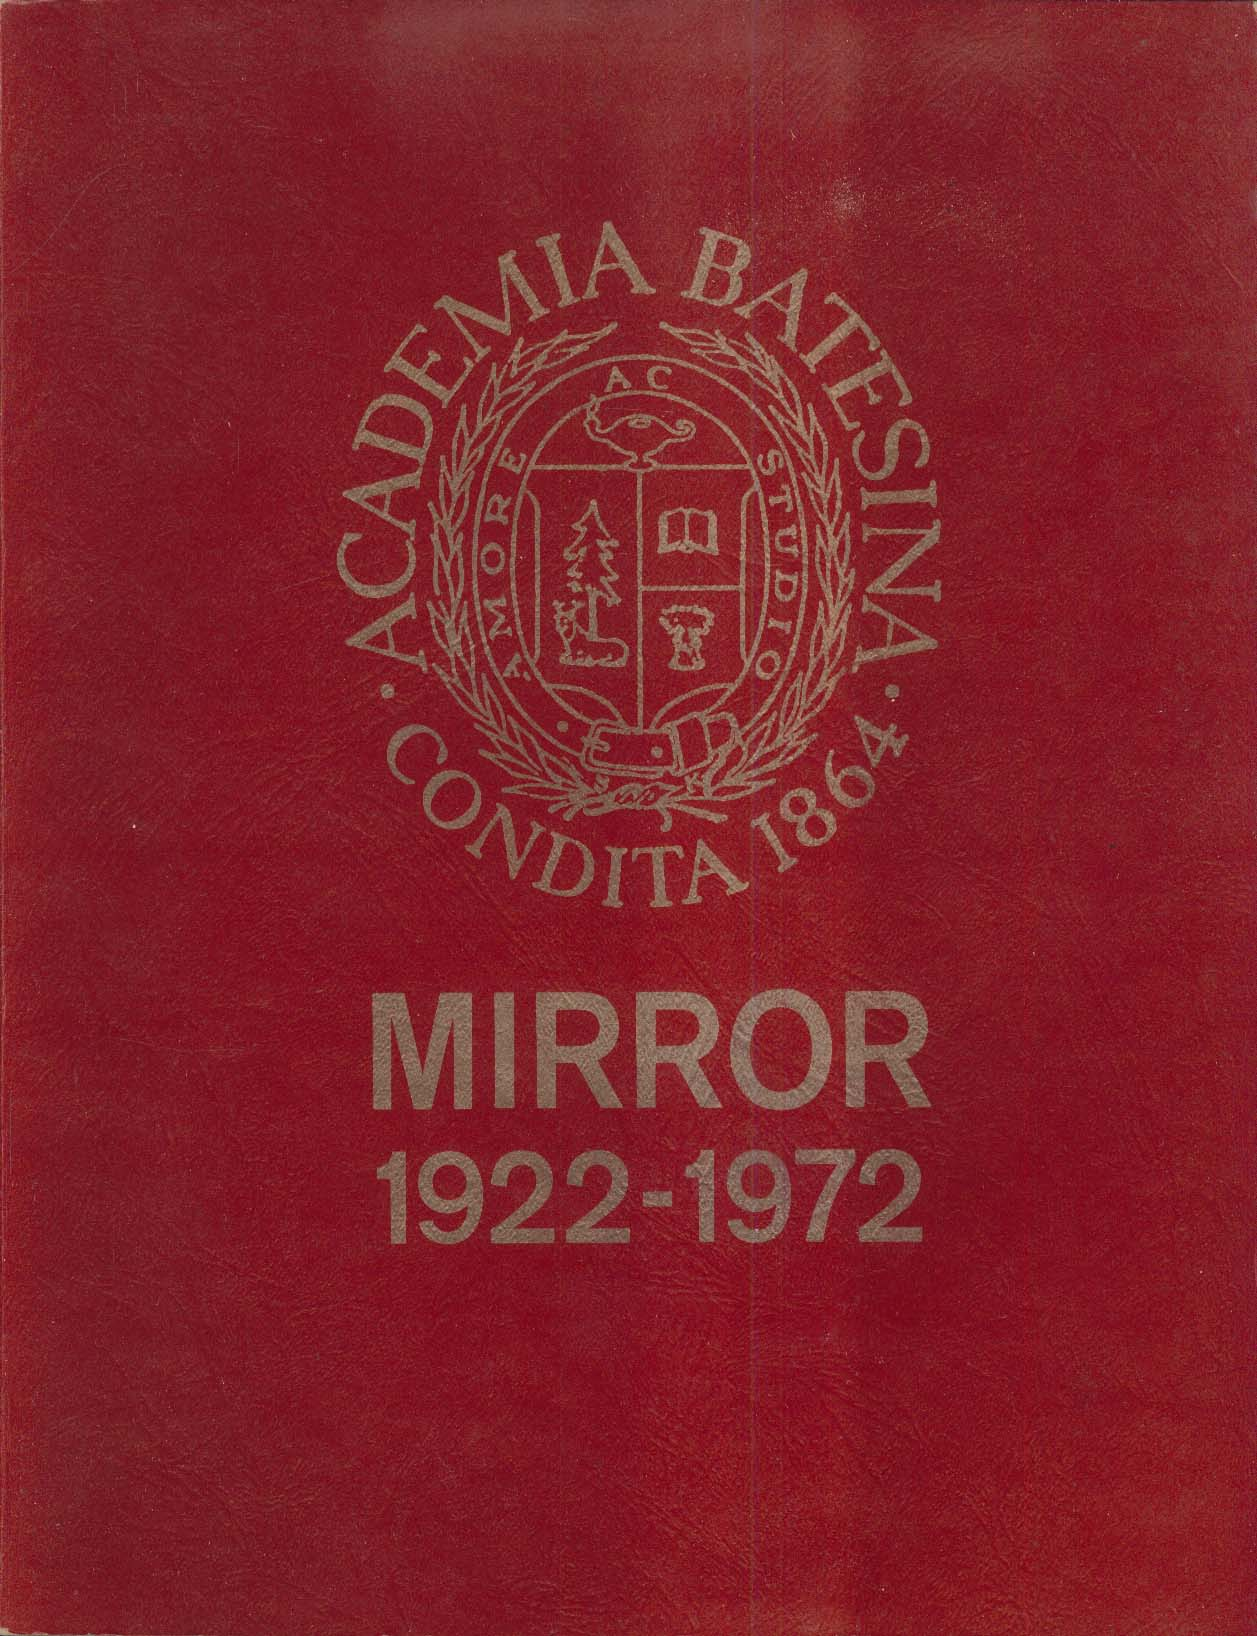 Image for Golden Edition Bates Mirror 1972 Yearbook 50th Anniversary 1922